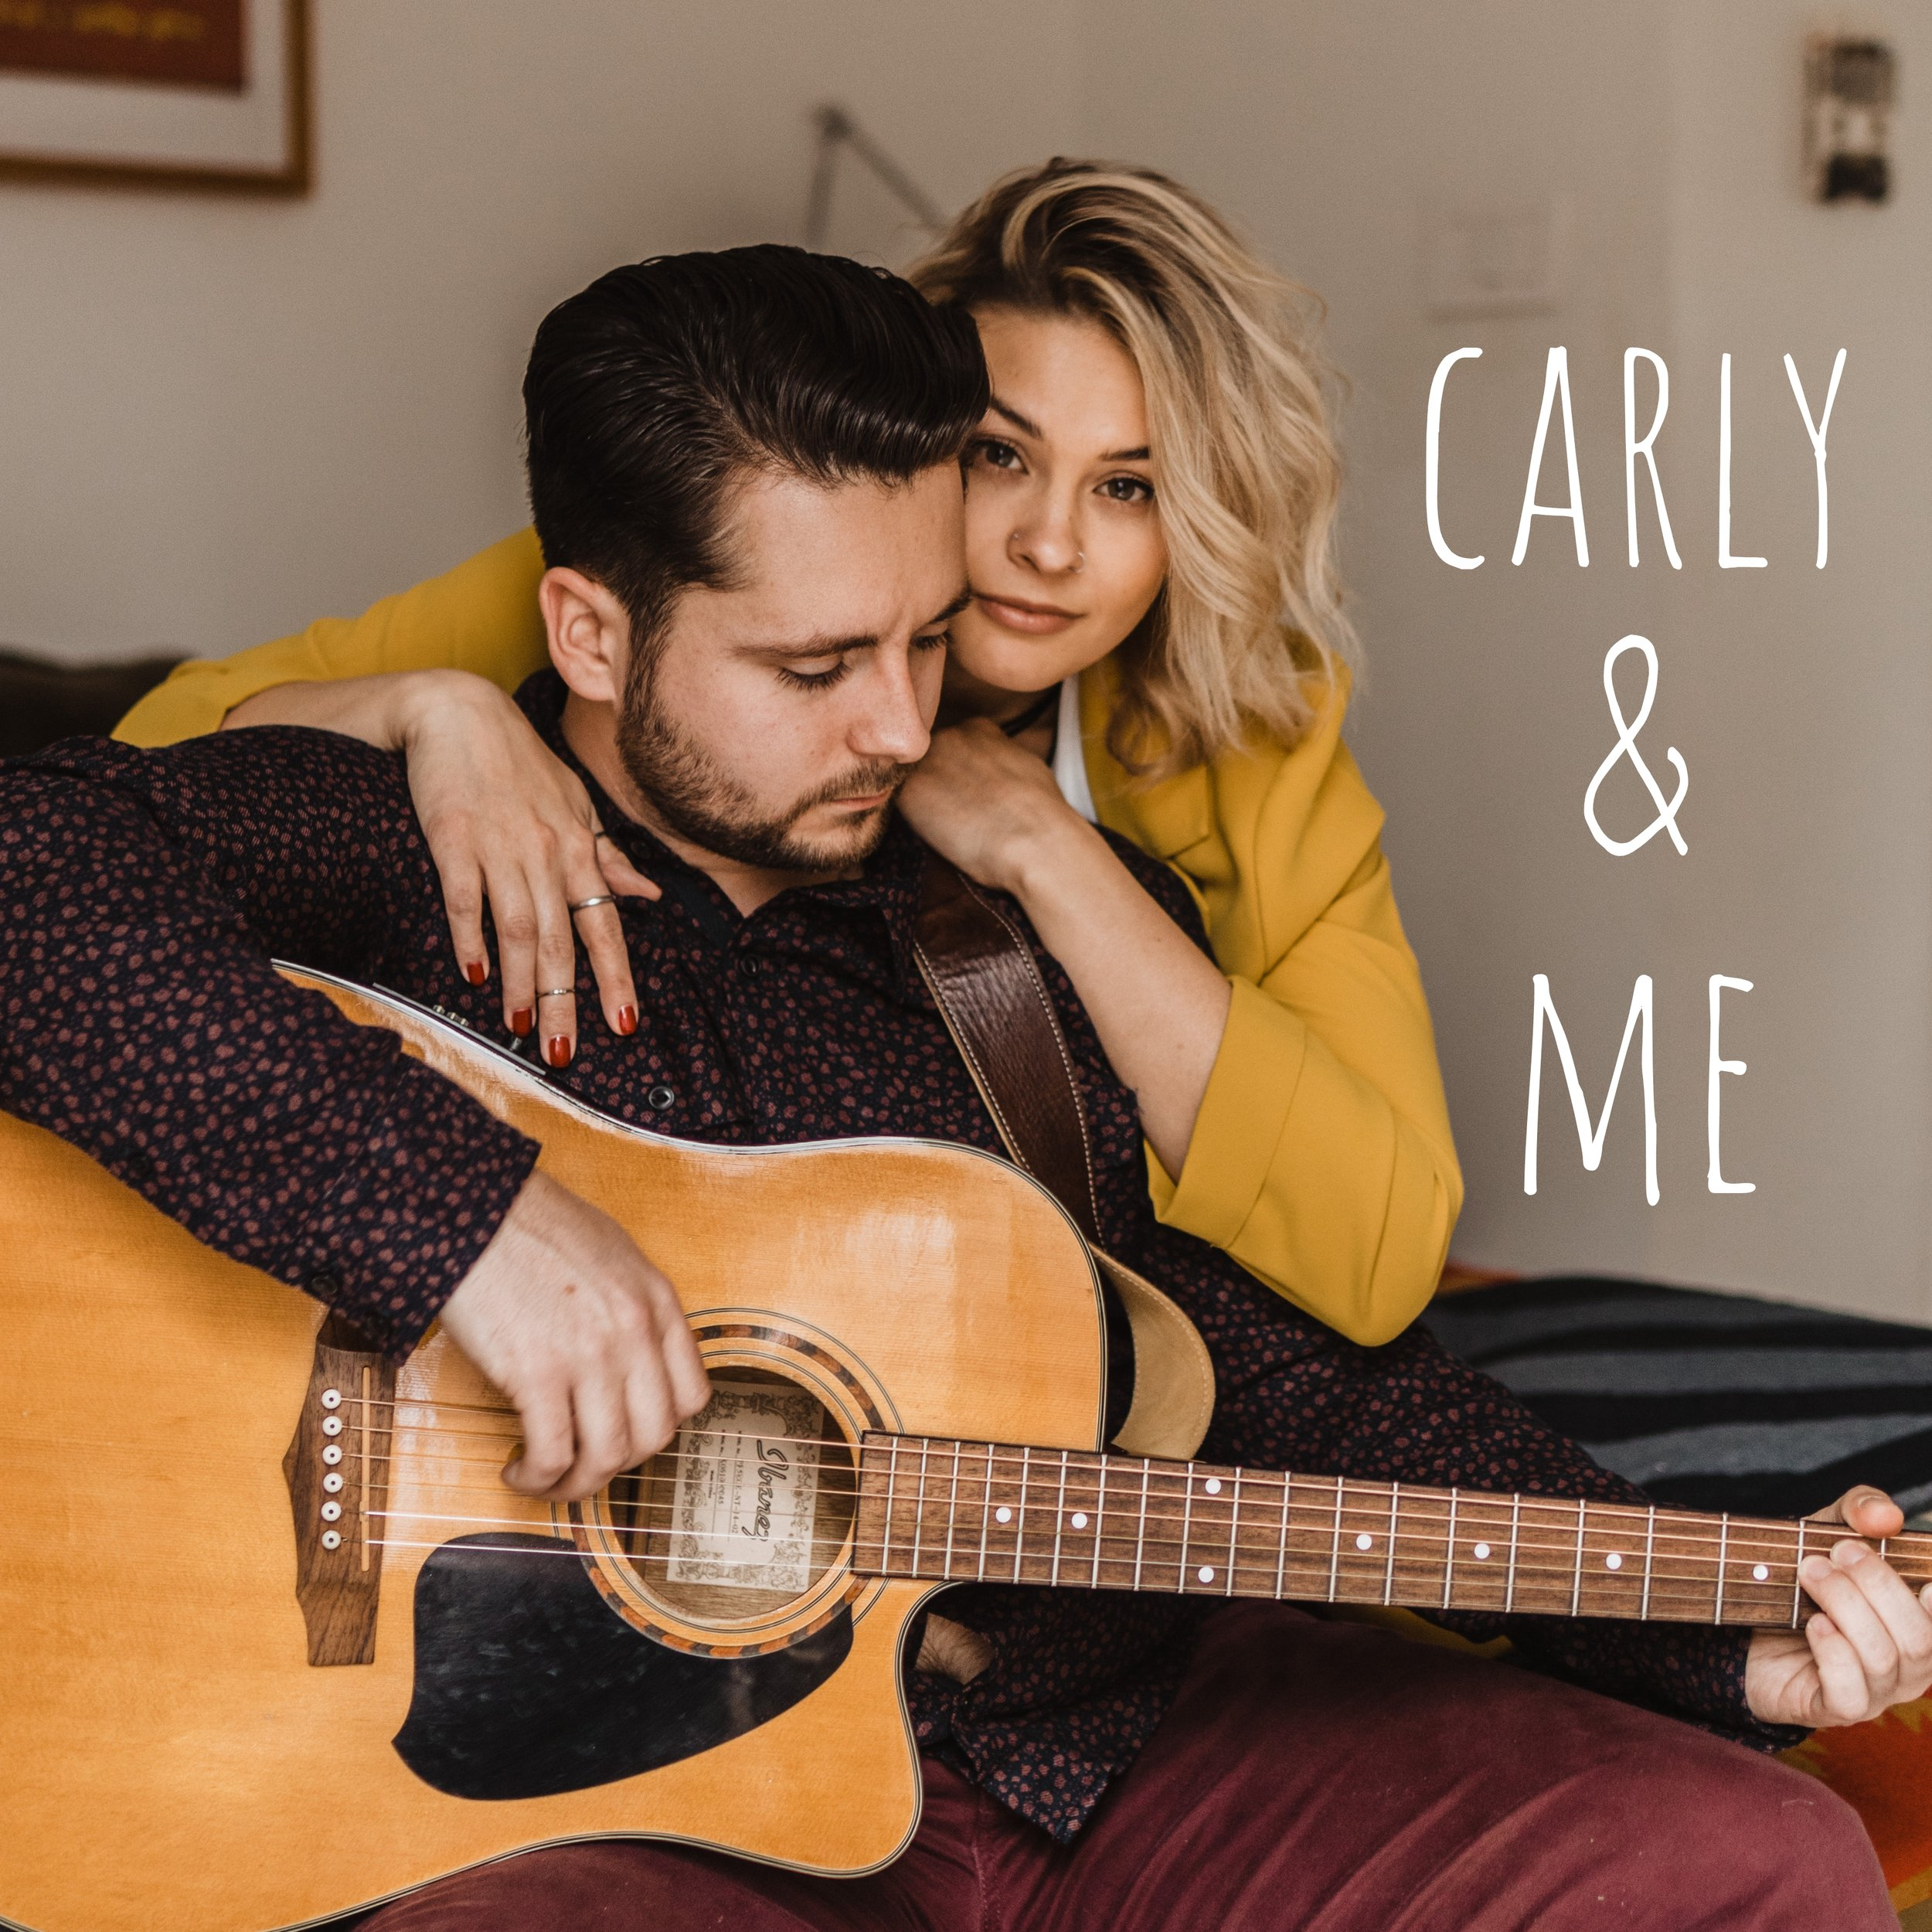 Carly & Me - Promo Graphic.jpg